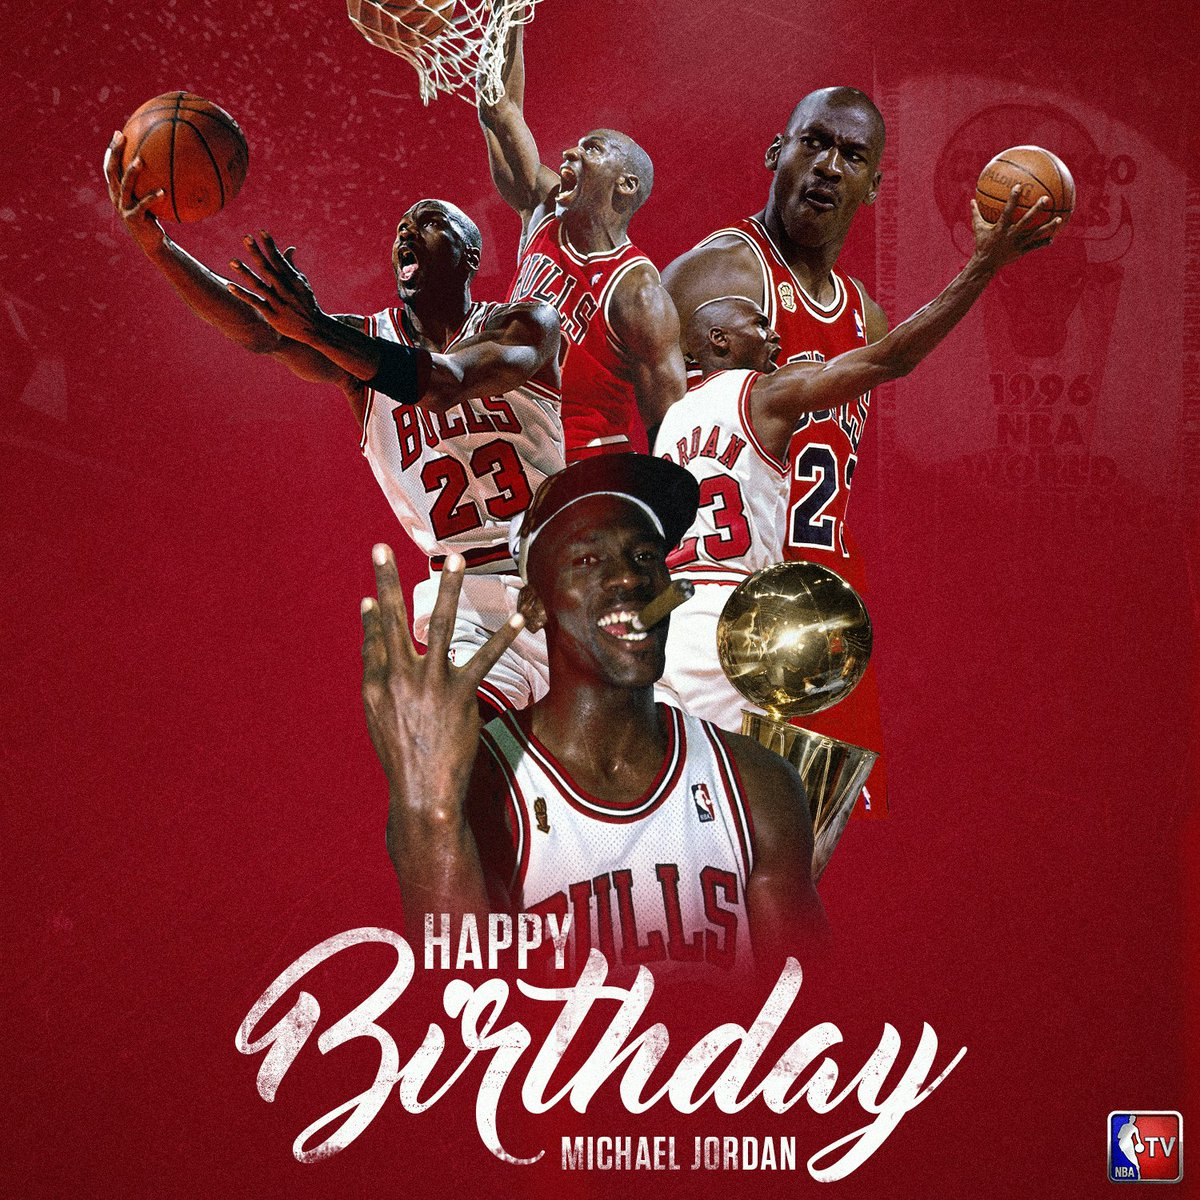 Happy Birthday, Michael Jordan! The 6x NBA Champion, 5x MVP & 14x All-Star turns 54 today. 🎉